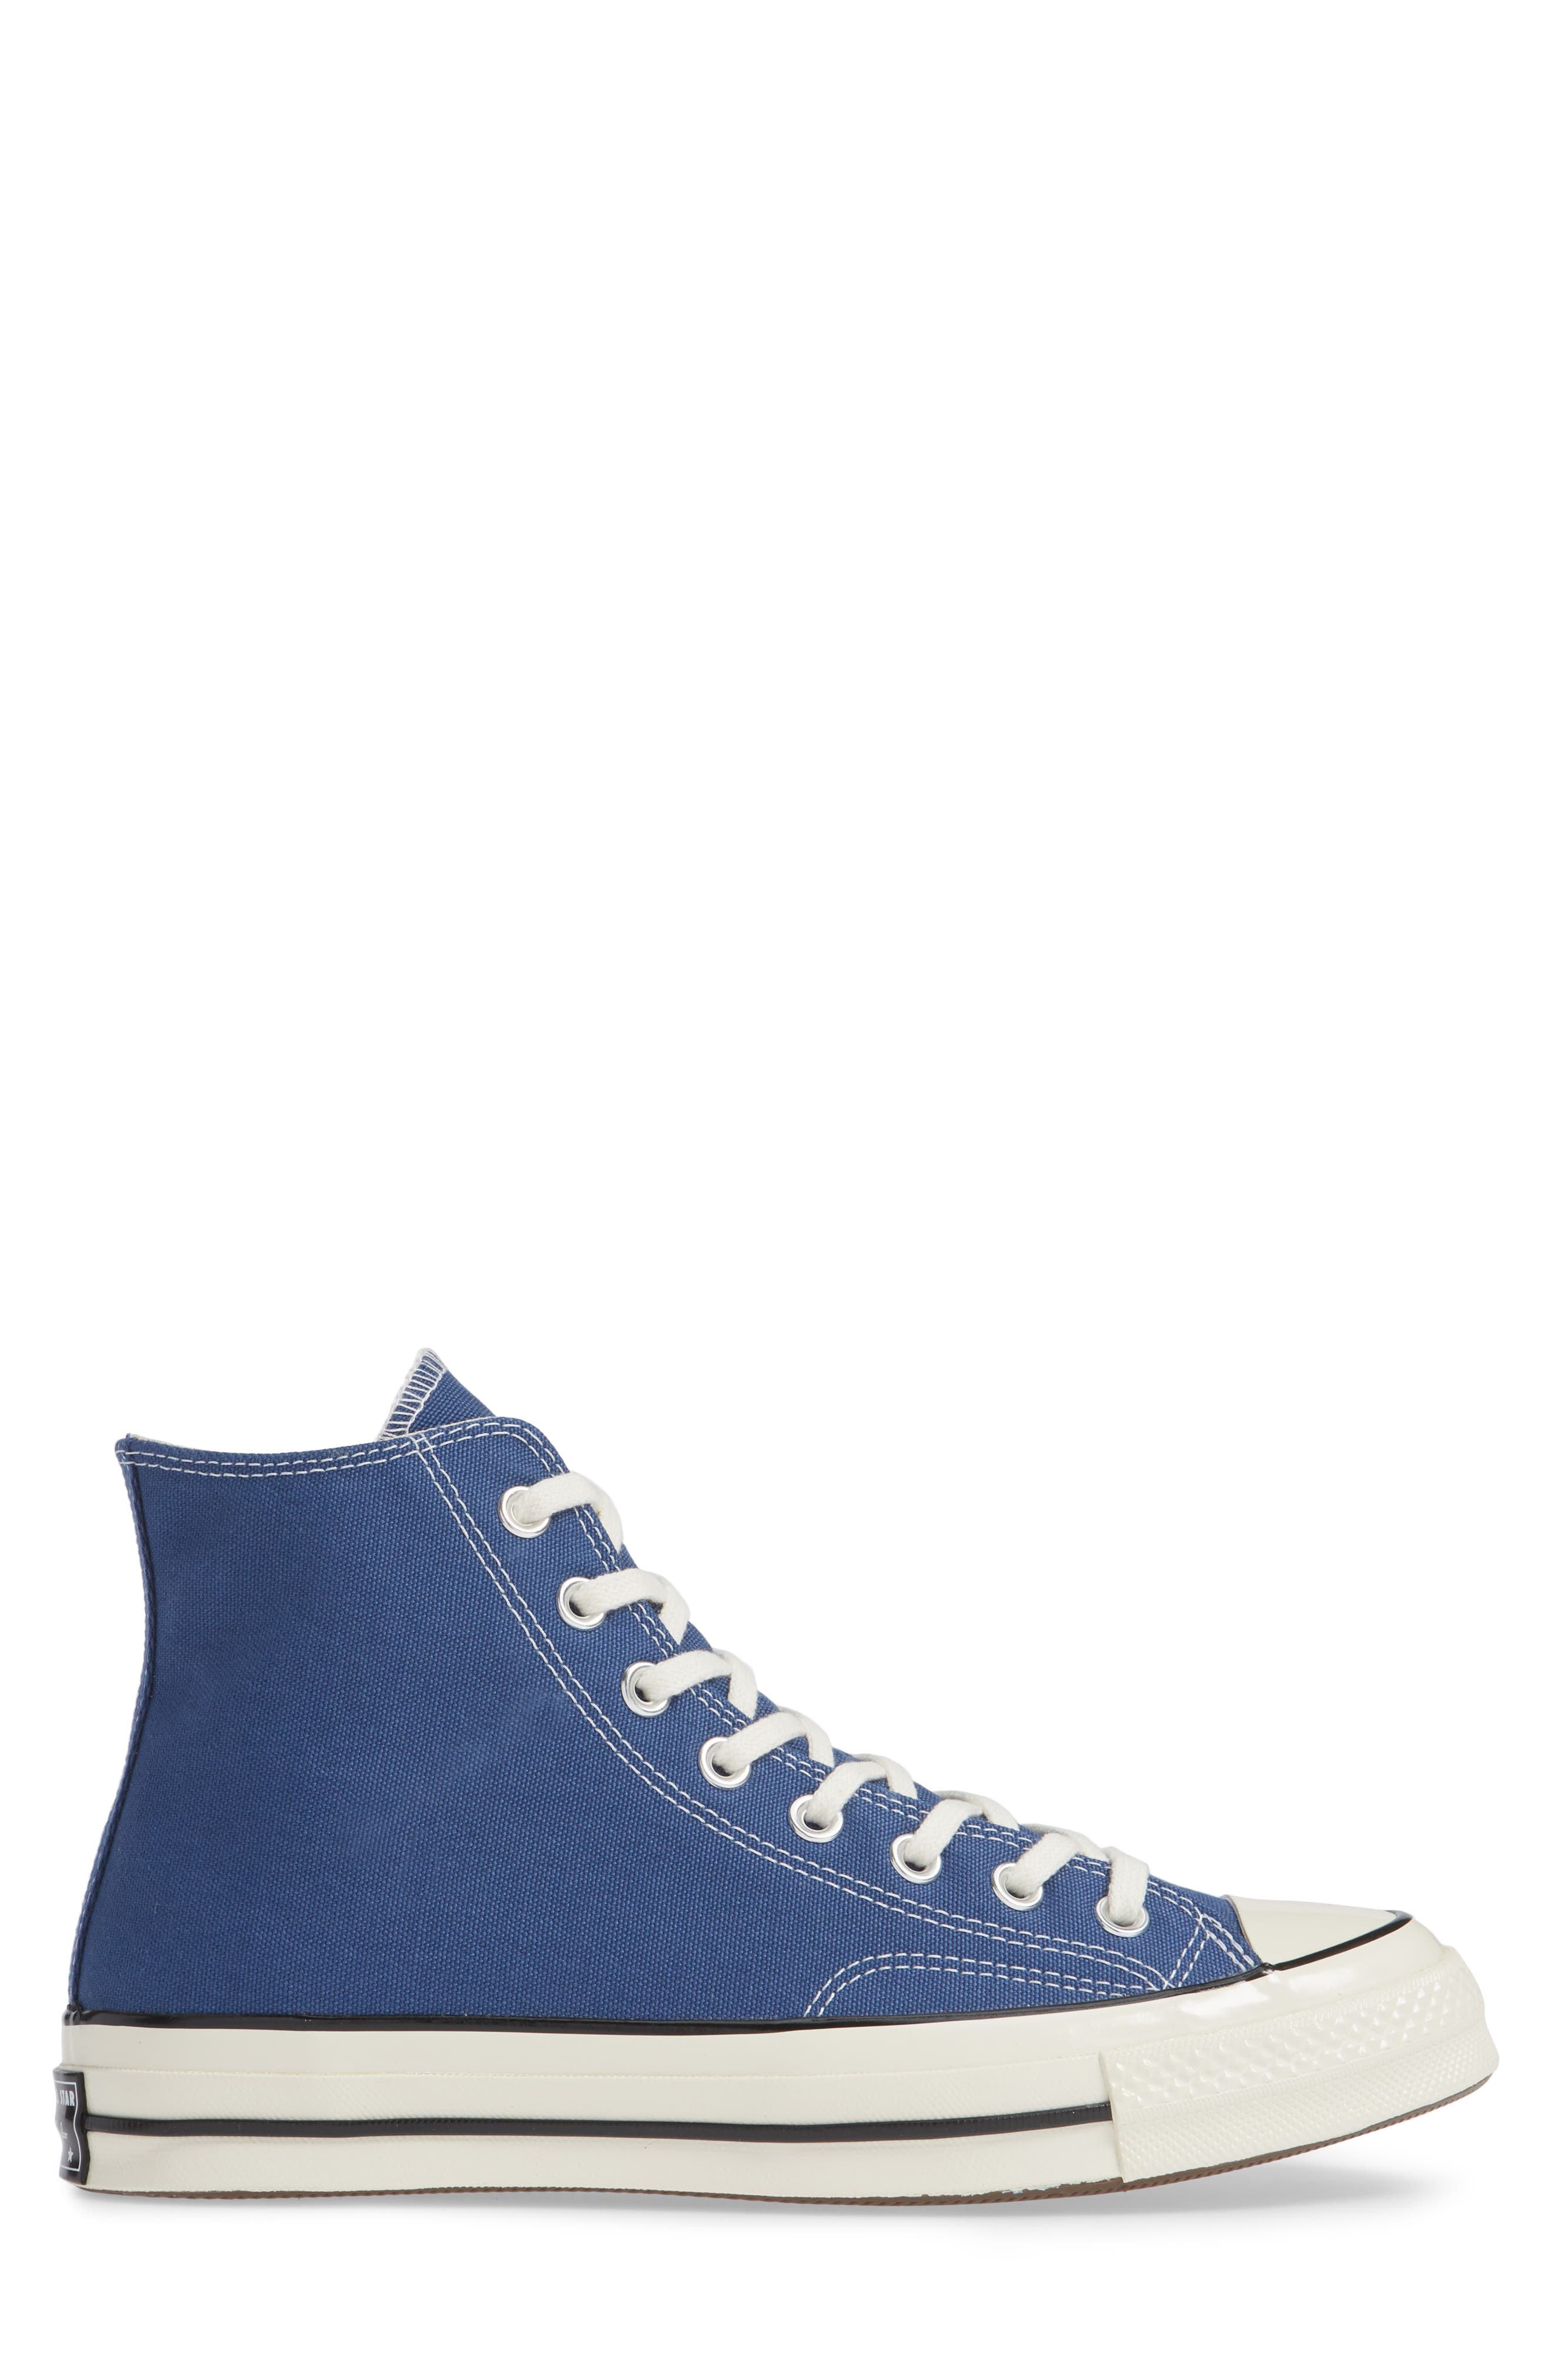 Chuck Taylor<sup>®</sup> All Star<sup>®</sup> 70 Vintage High Top Sneaker,                             Alternate thumbnail 3, color,                             TRUE NAVY/ BLACK